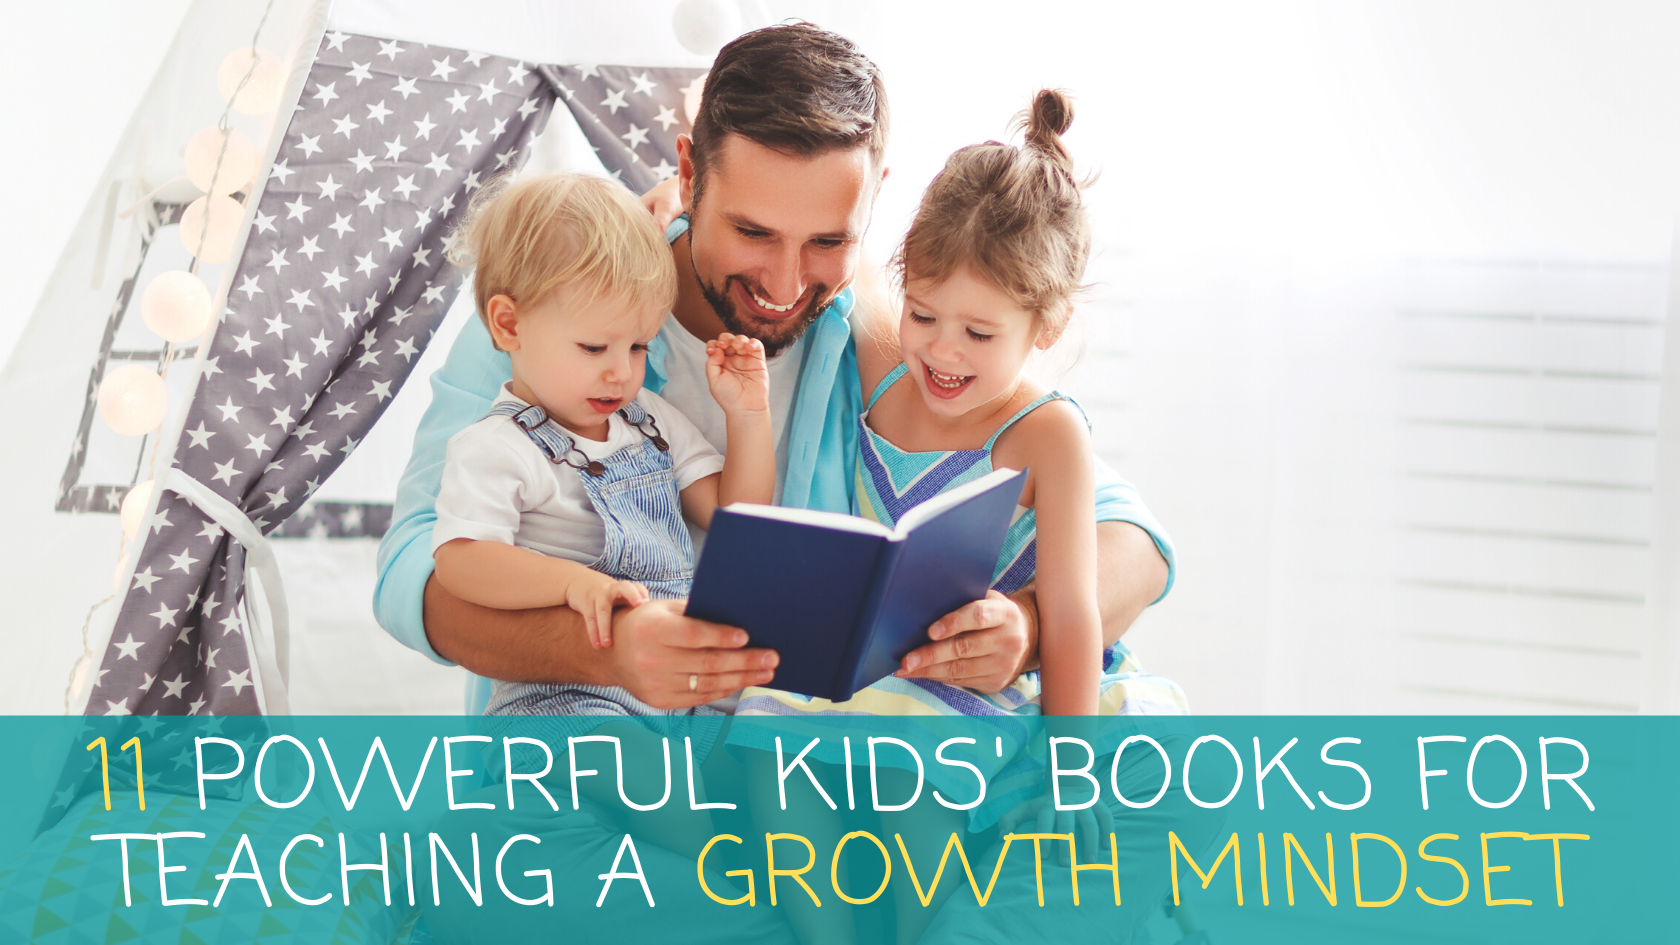 11 Powerful Kids' Books for teaching a Growth Mindset